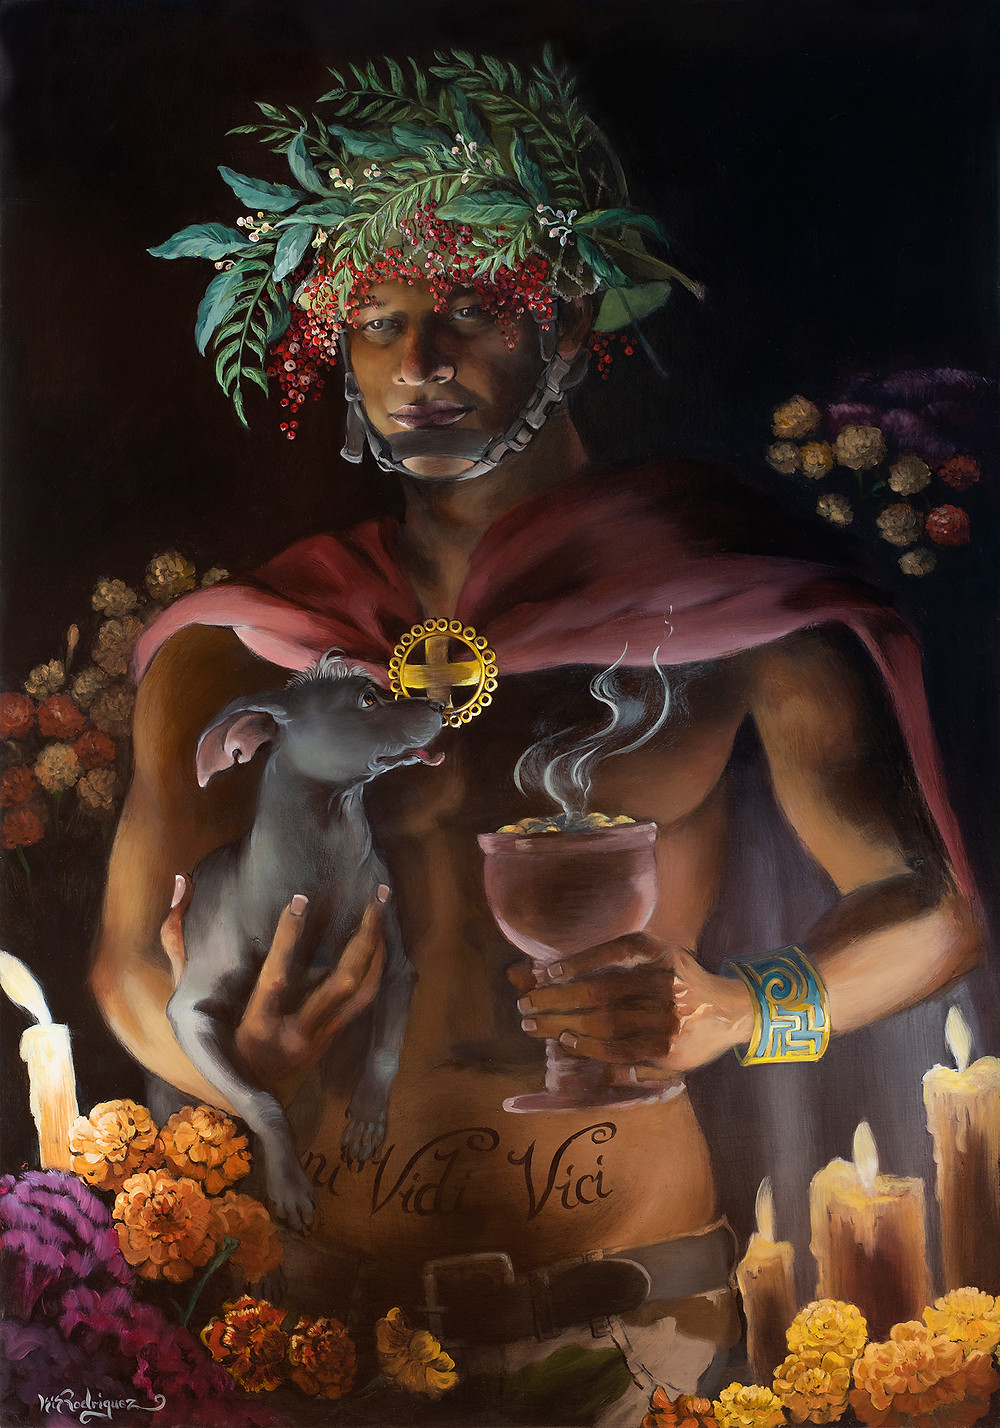 A portrait painting of a spiritual warrior holding a xoloitzcuintle and an incense burner